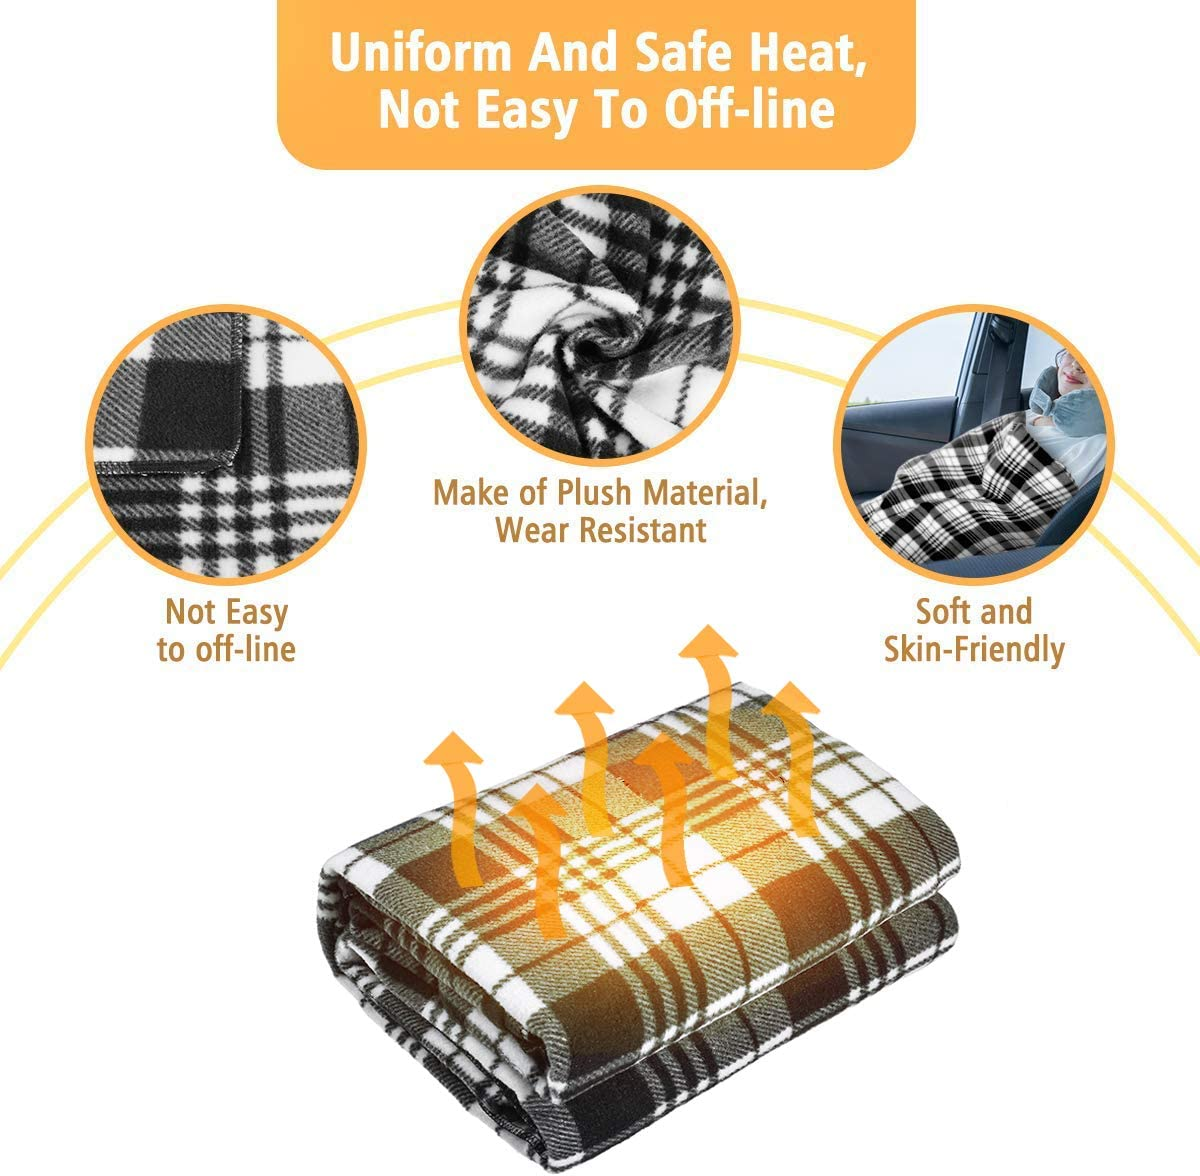 Tvird Electric Car Blanket- 12 Volt Heated Car Blanket with Temperature Controller,Travel Electric Blanket for Cars and RVs-Great for Cold Weather Tailgating 59x43 and Emergency Kits Black//White